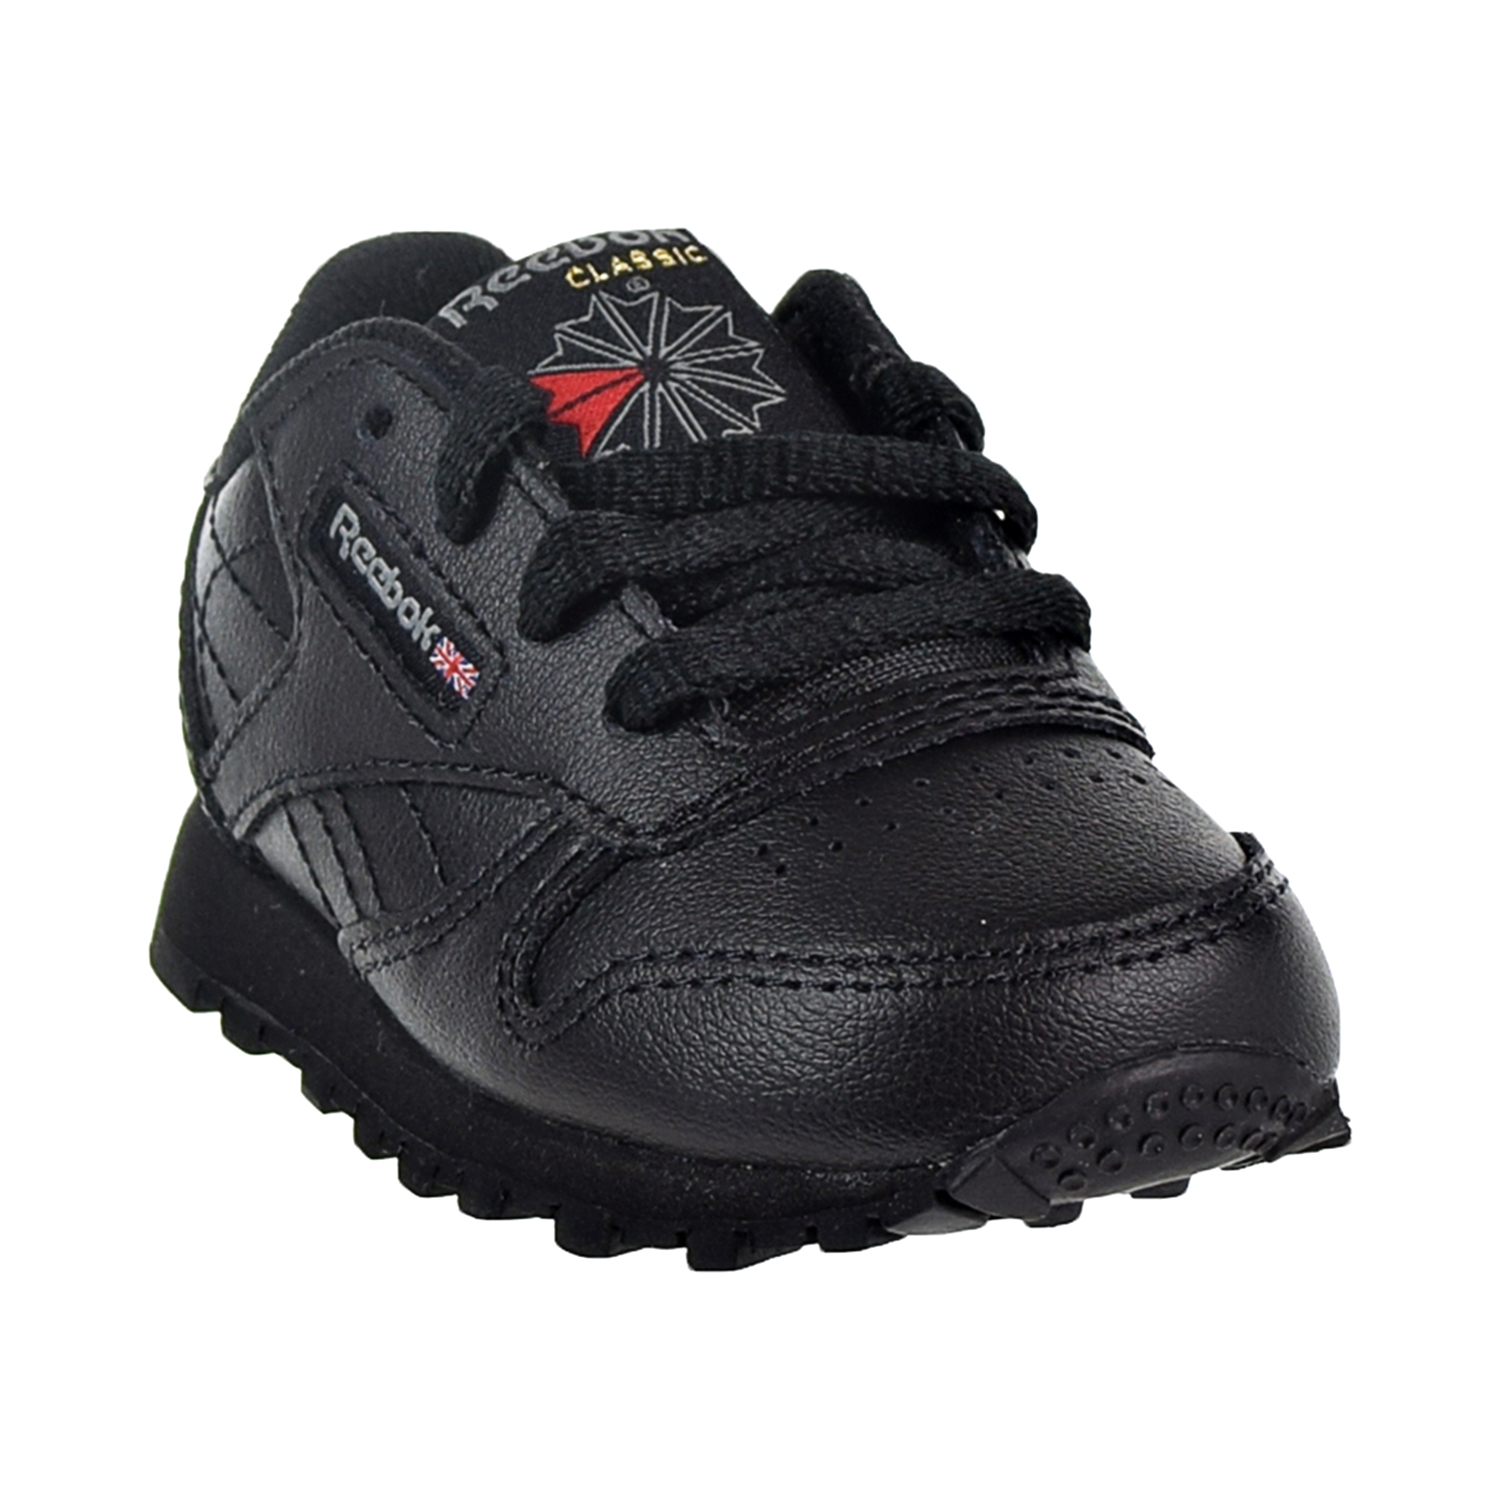 8be4db4043a Reebok Classic Leather Toddler s Shoes Black 92757